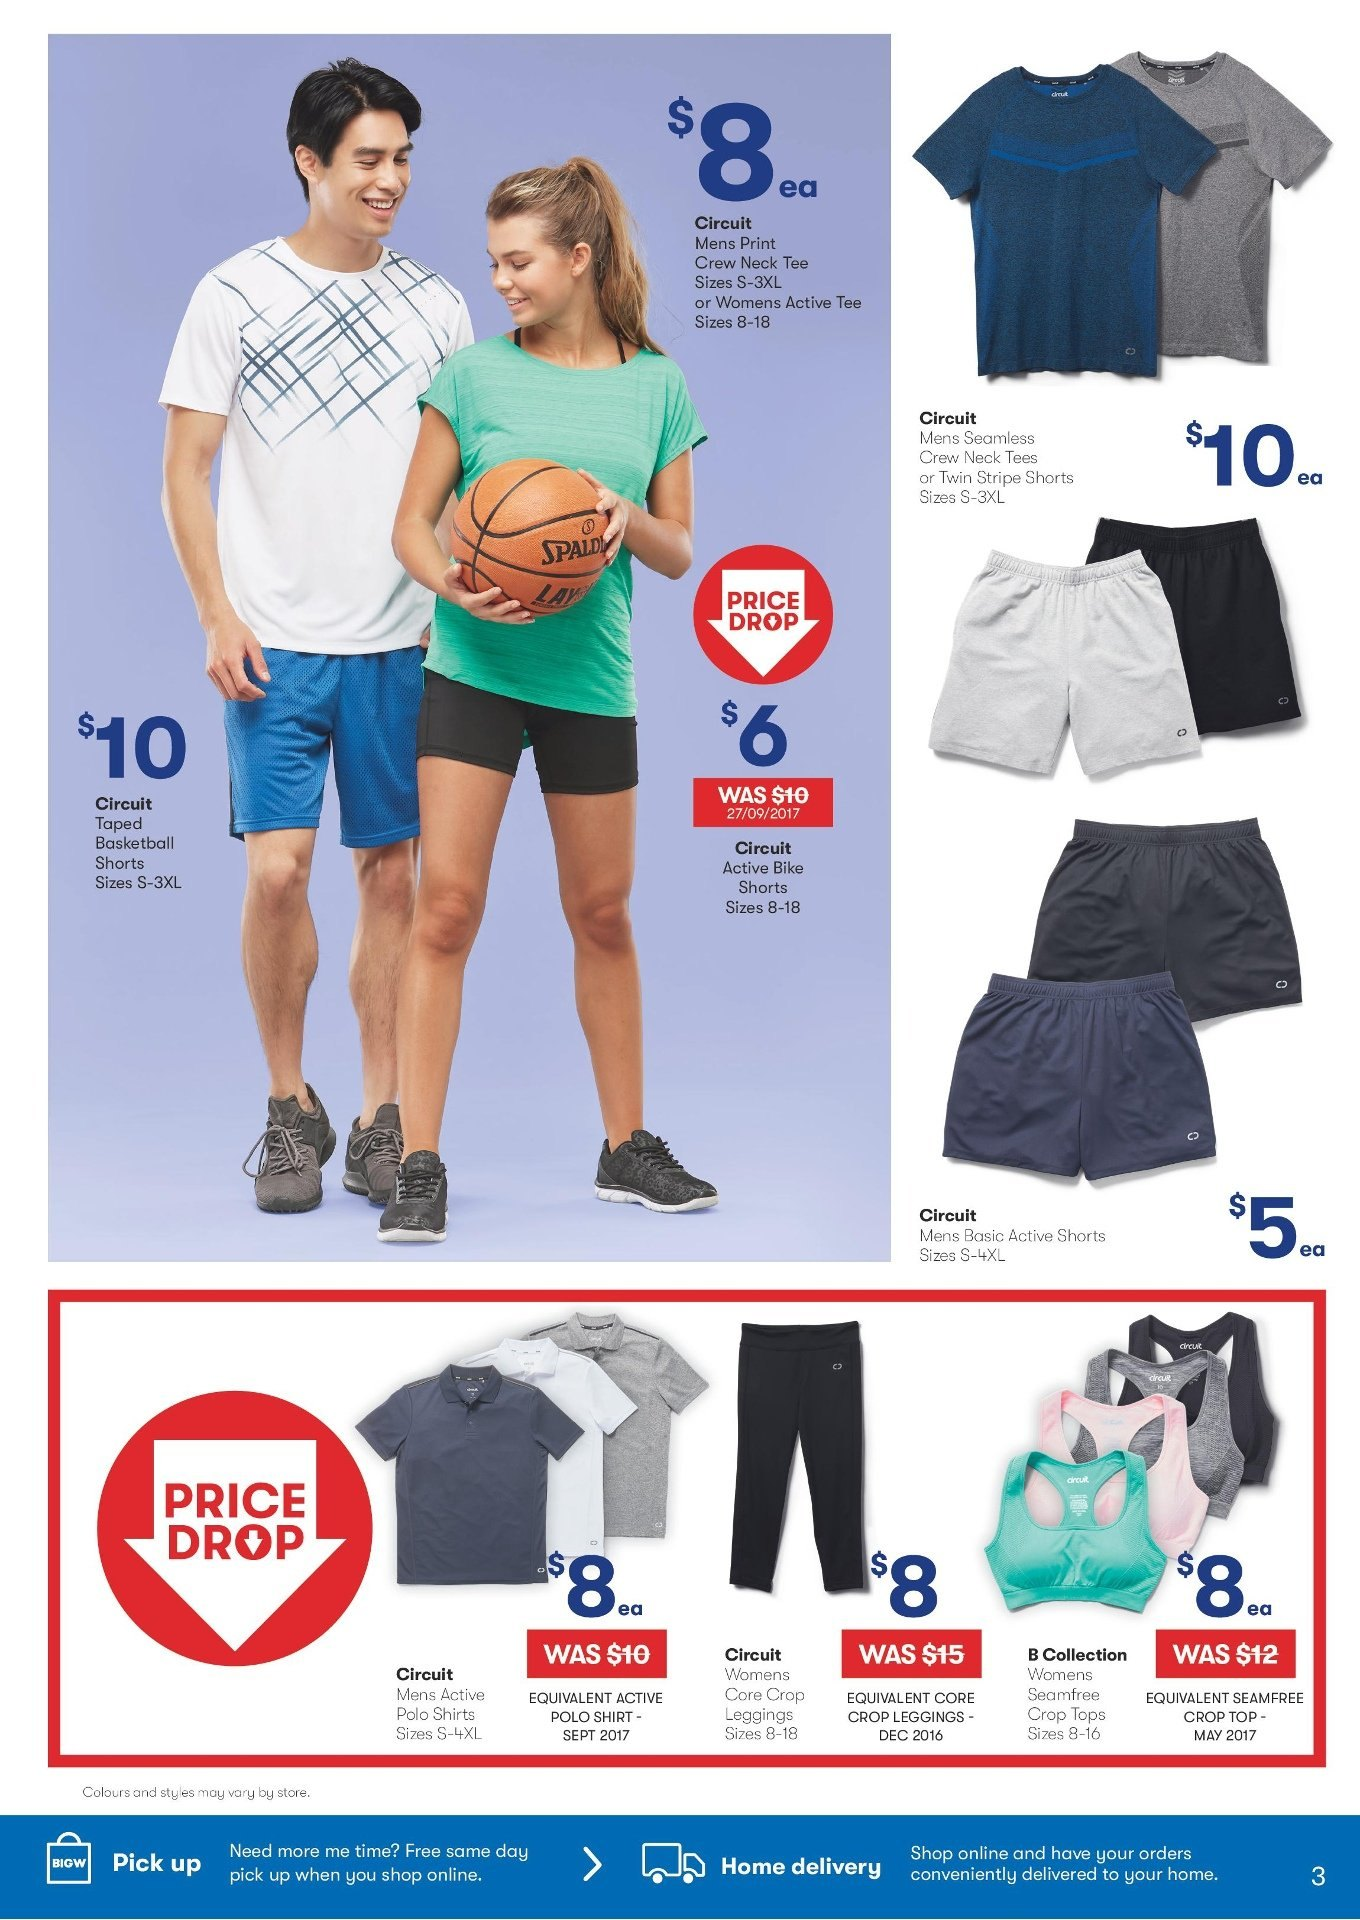 9fa9a496303a0 BIG W catalogue and weekly specials 10.1.2019 - 23.1.2019 | Au ...